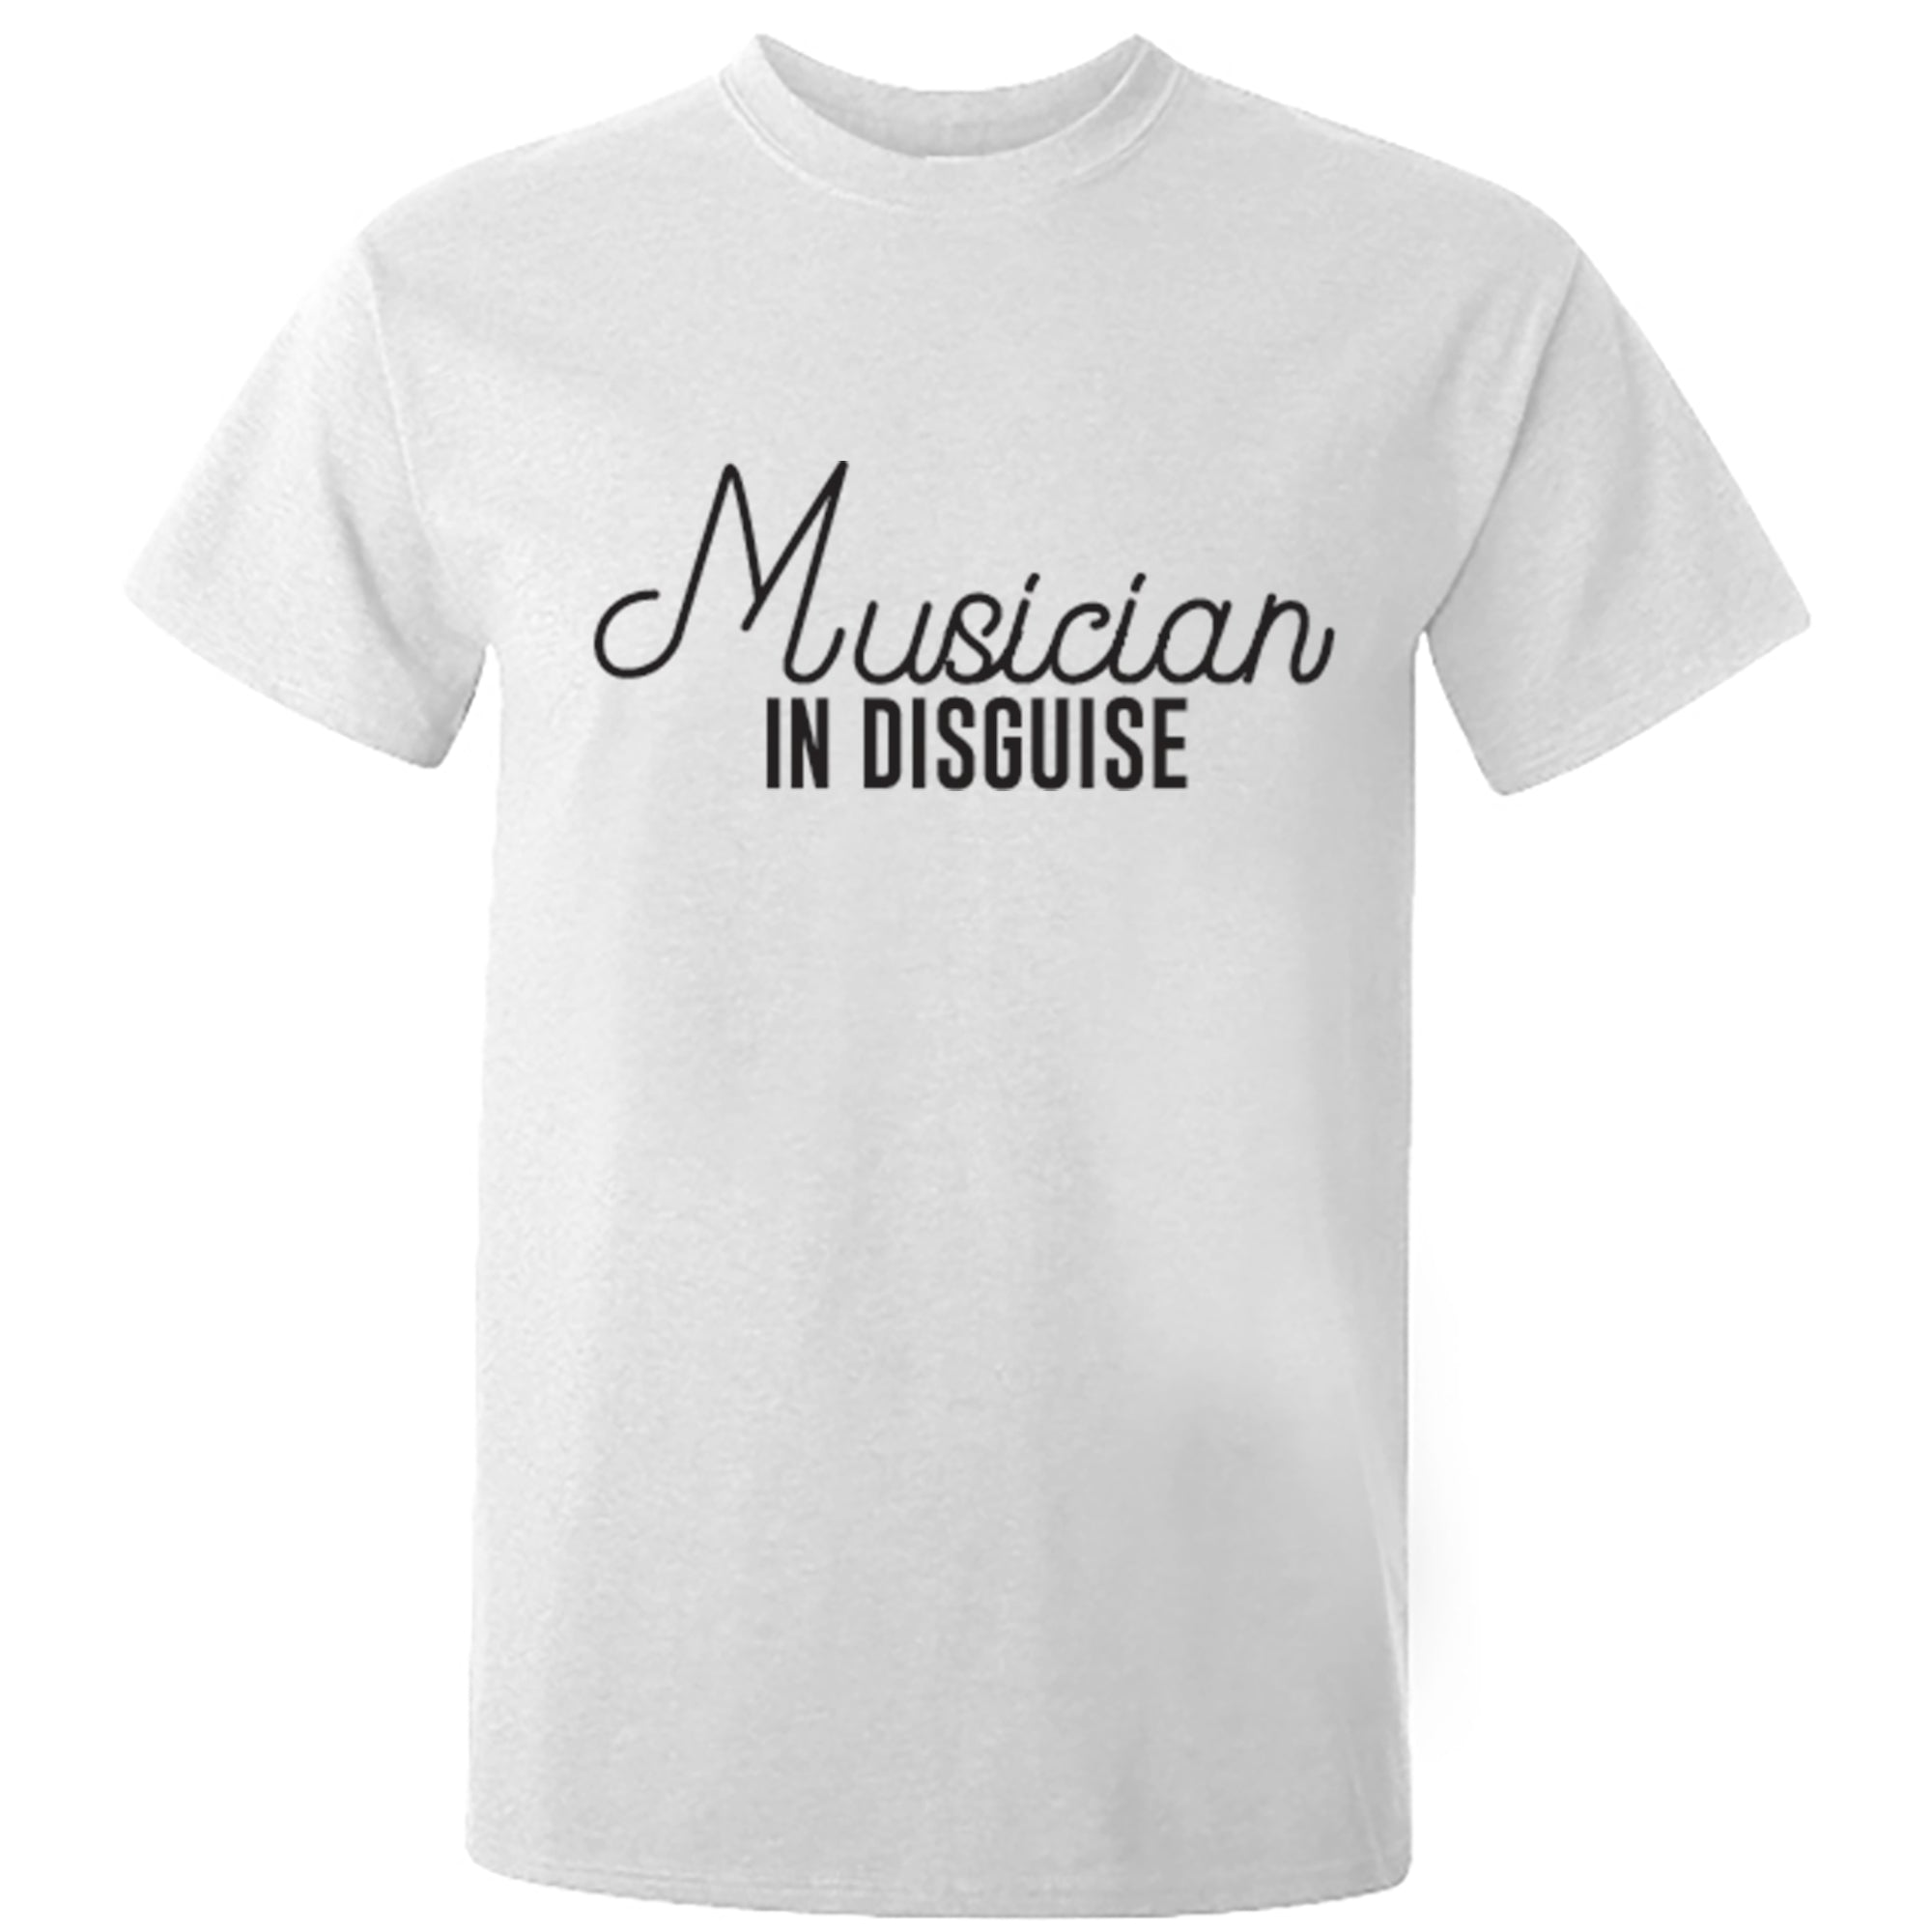 Musician In Disguise Unisex Fit T-Shirt S0050 - Illustrated Identity Ltd.